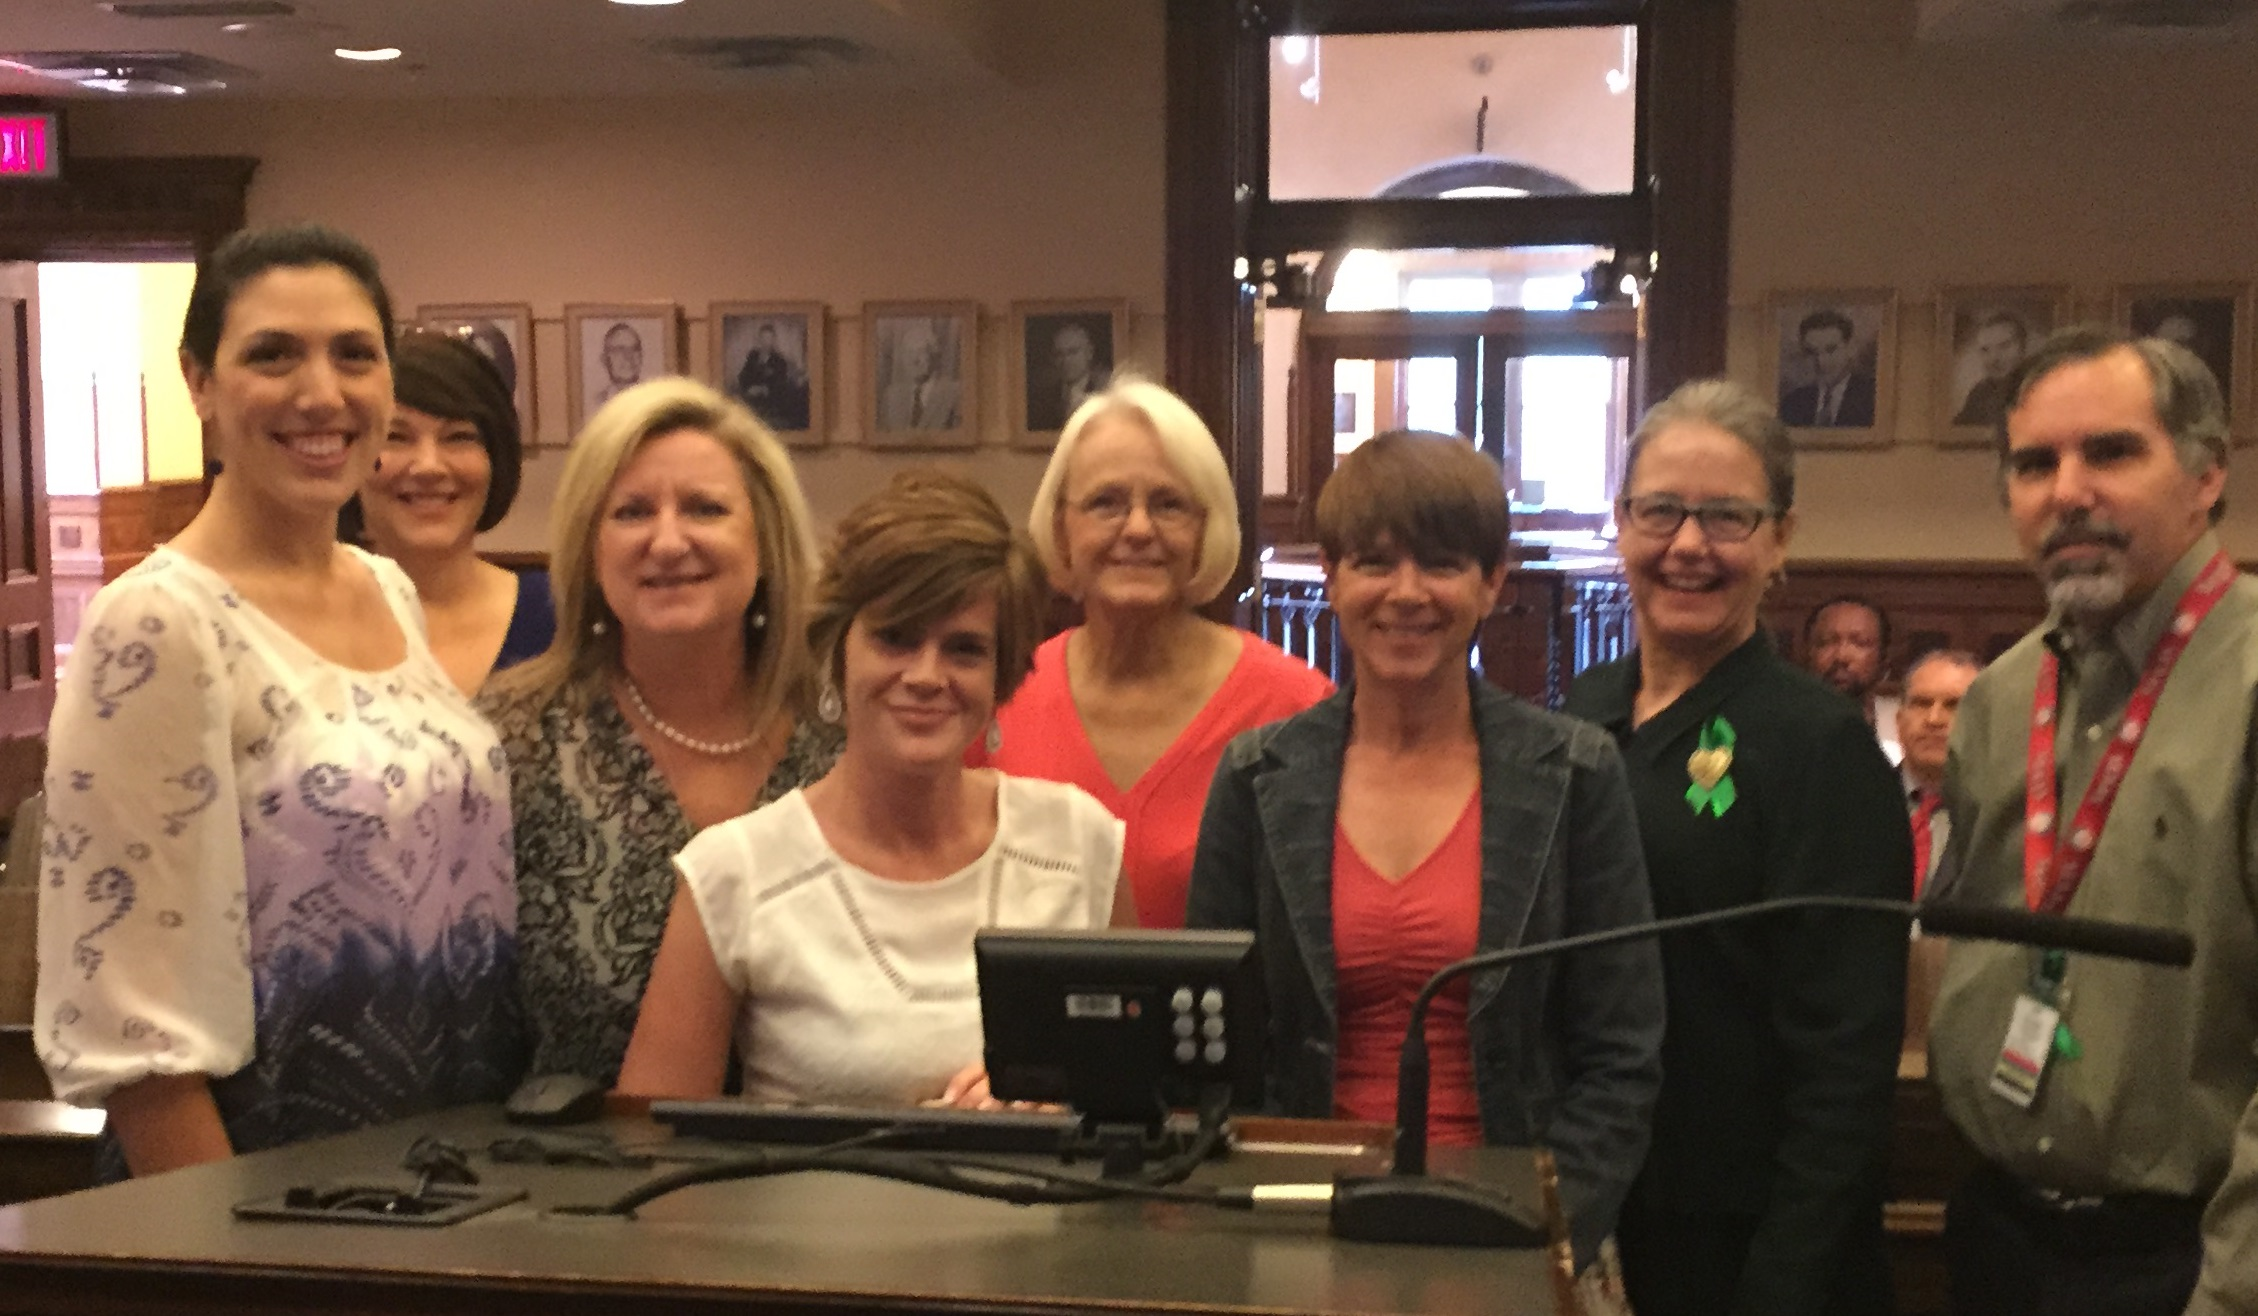 Representatives of the WATCH Coalition, Denton County MHMR Center, and Denton County Federation of Families receiving a proclamation at Commissioners Court, May 5, 2015